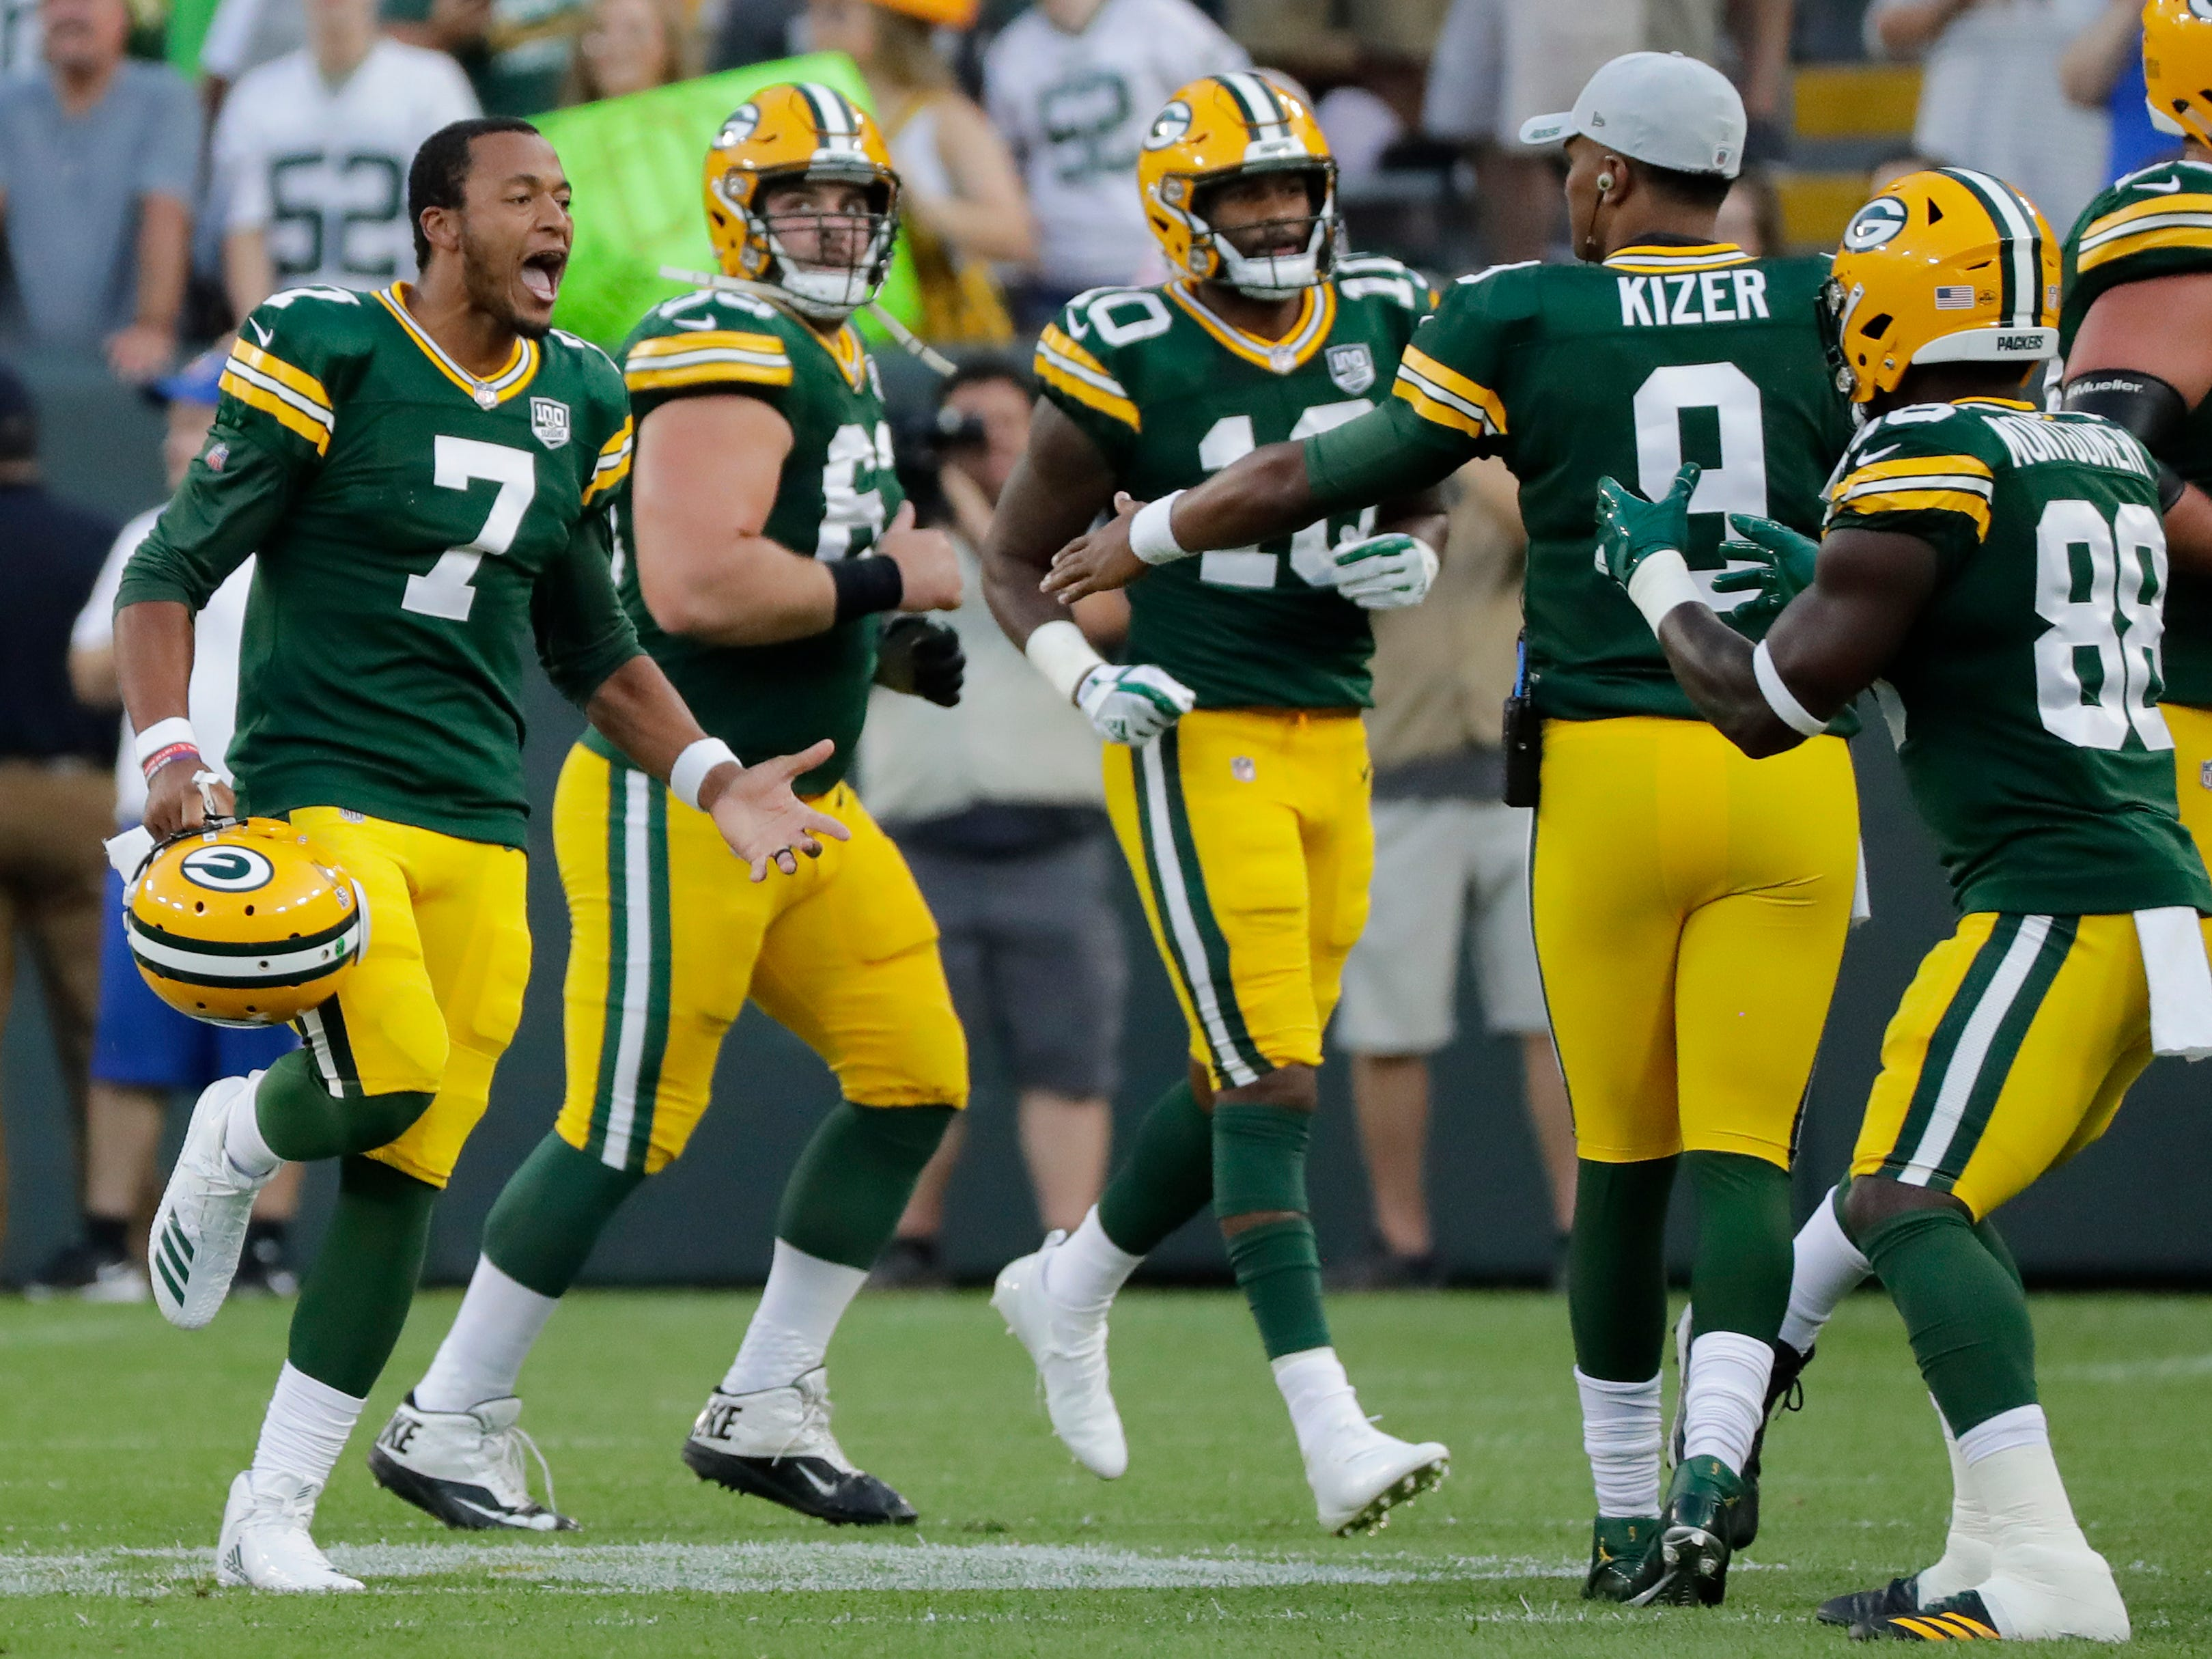 Green Bay Packers quarterback Brett Hundley (7) celebrates after throwing a touchdown against the Tennessee Titans in the first half of a NFL preseason game at Lambeau Field on Thursday, August 9, 2018 in Green Bay, Wis.